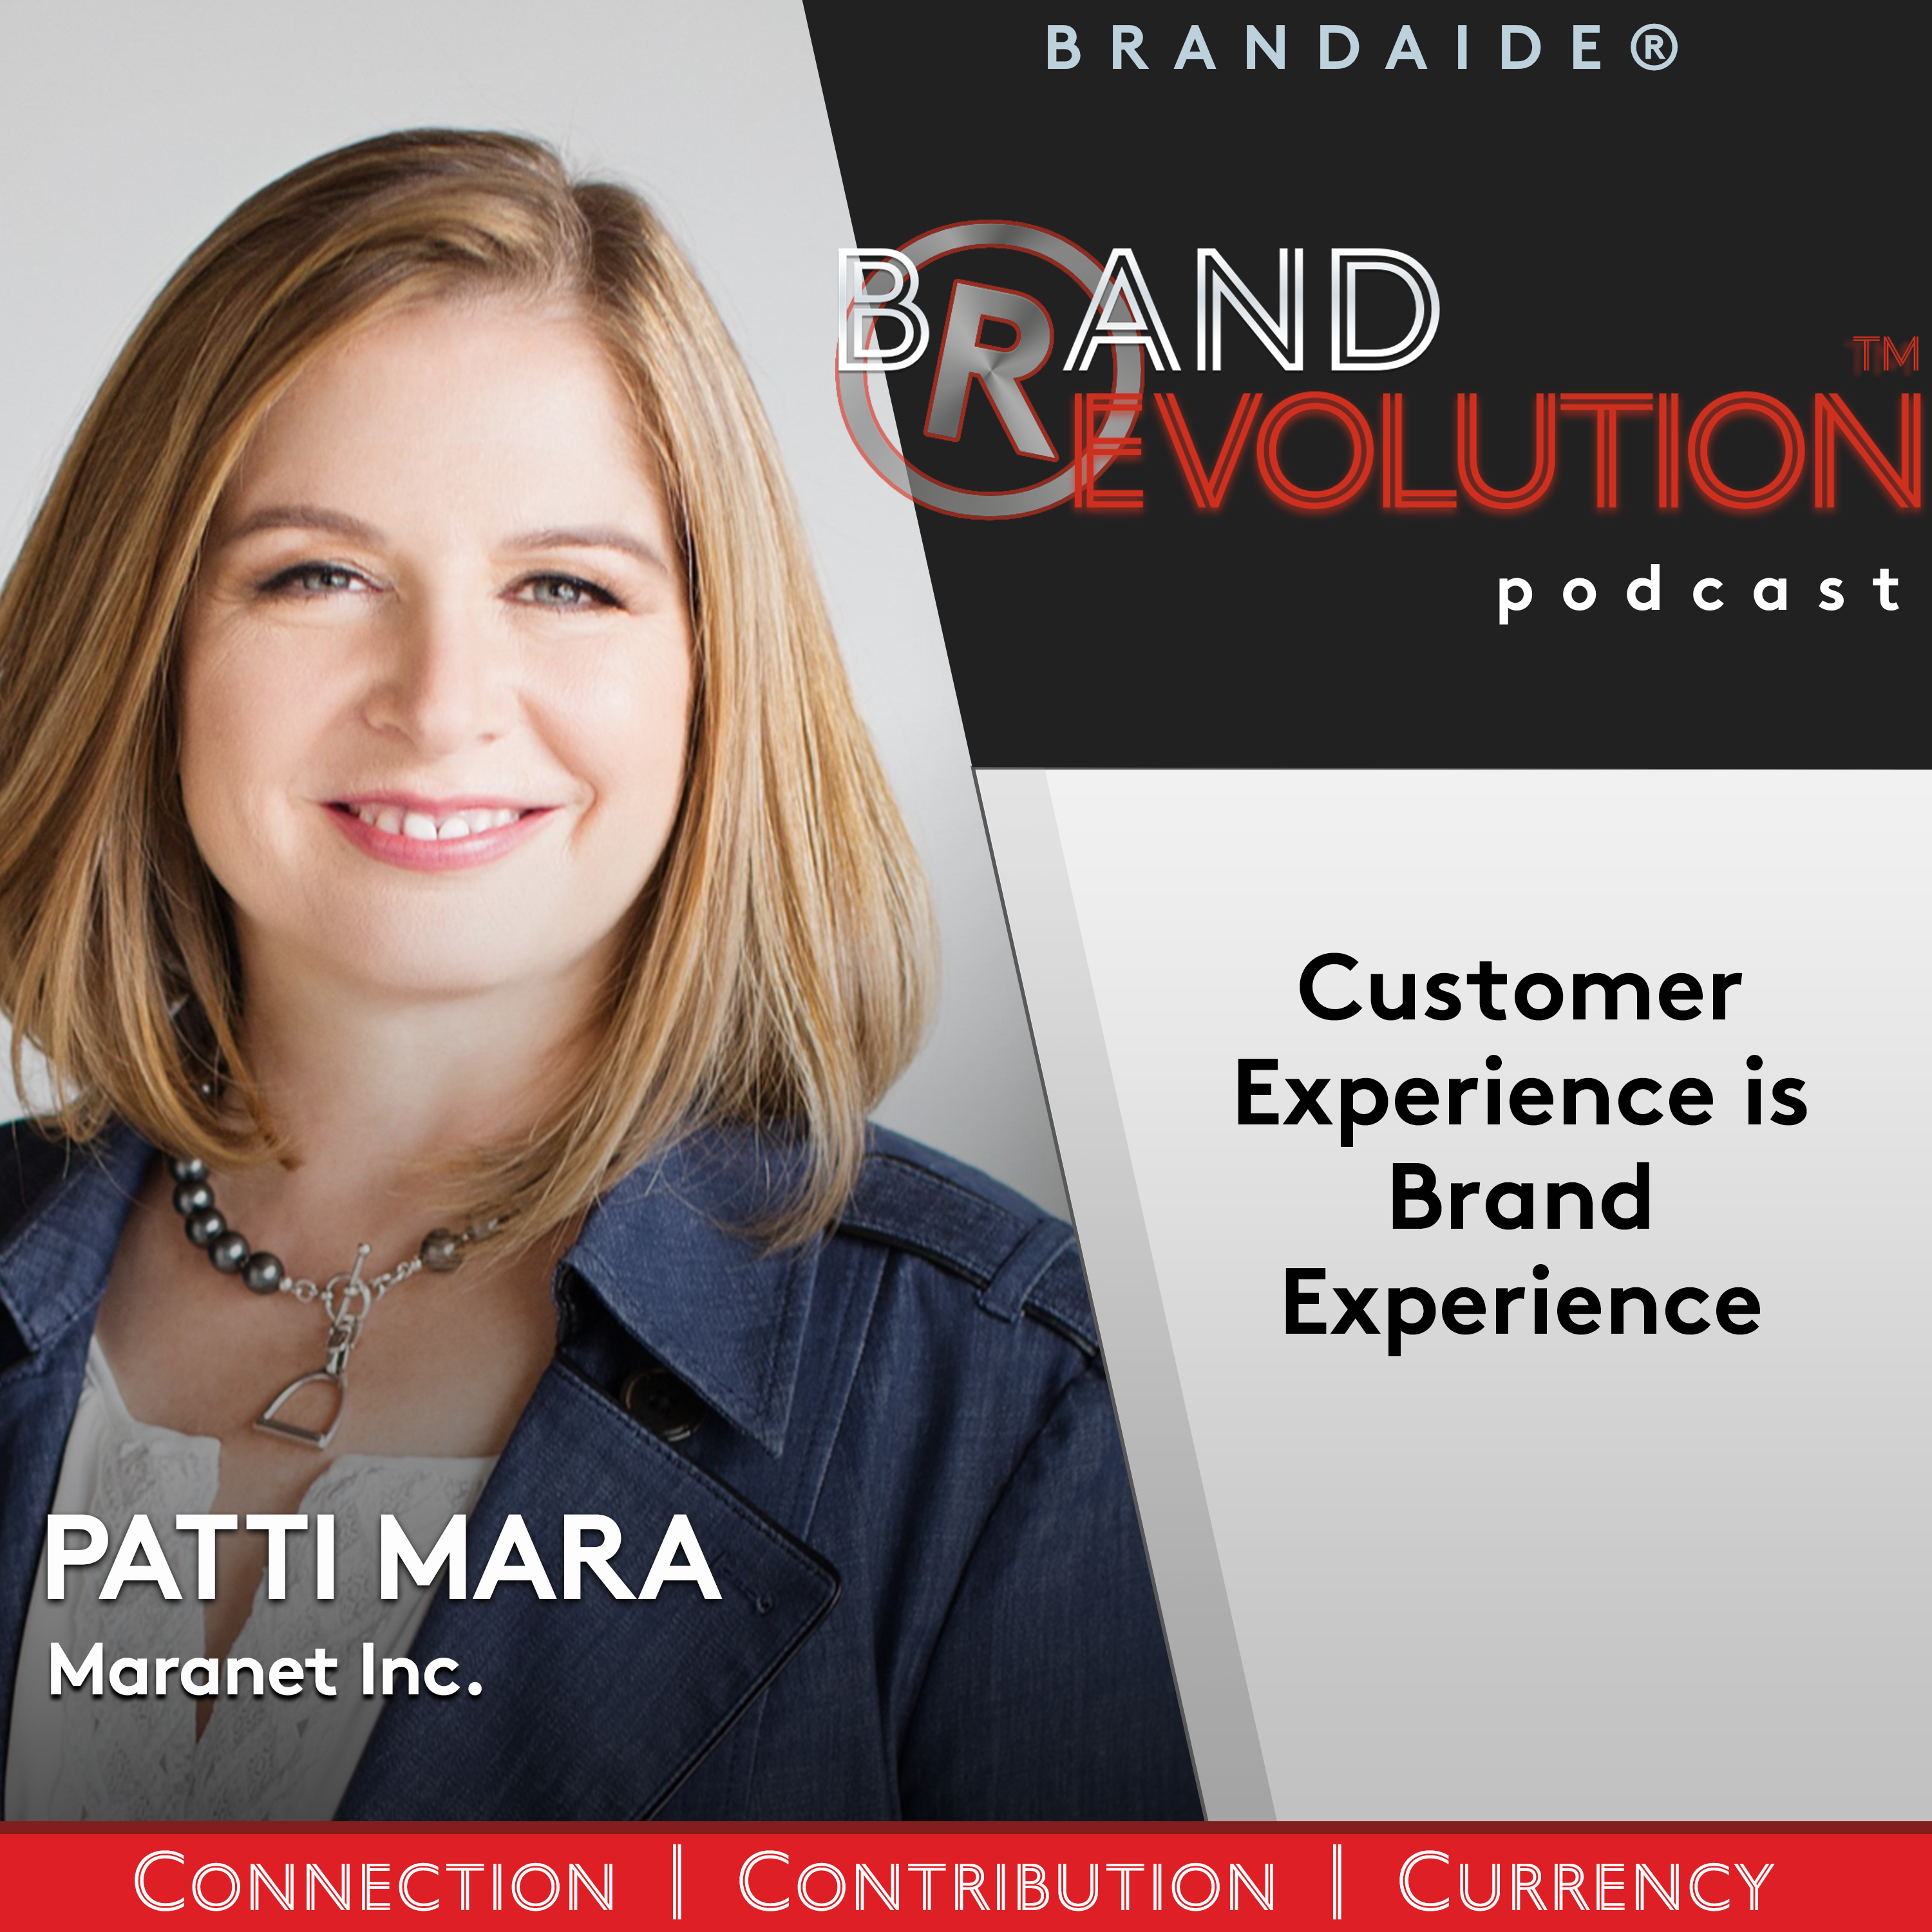 Customer Experience is Brand Experience – Patti Mara